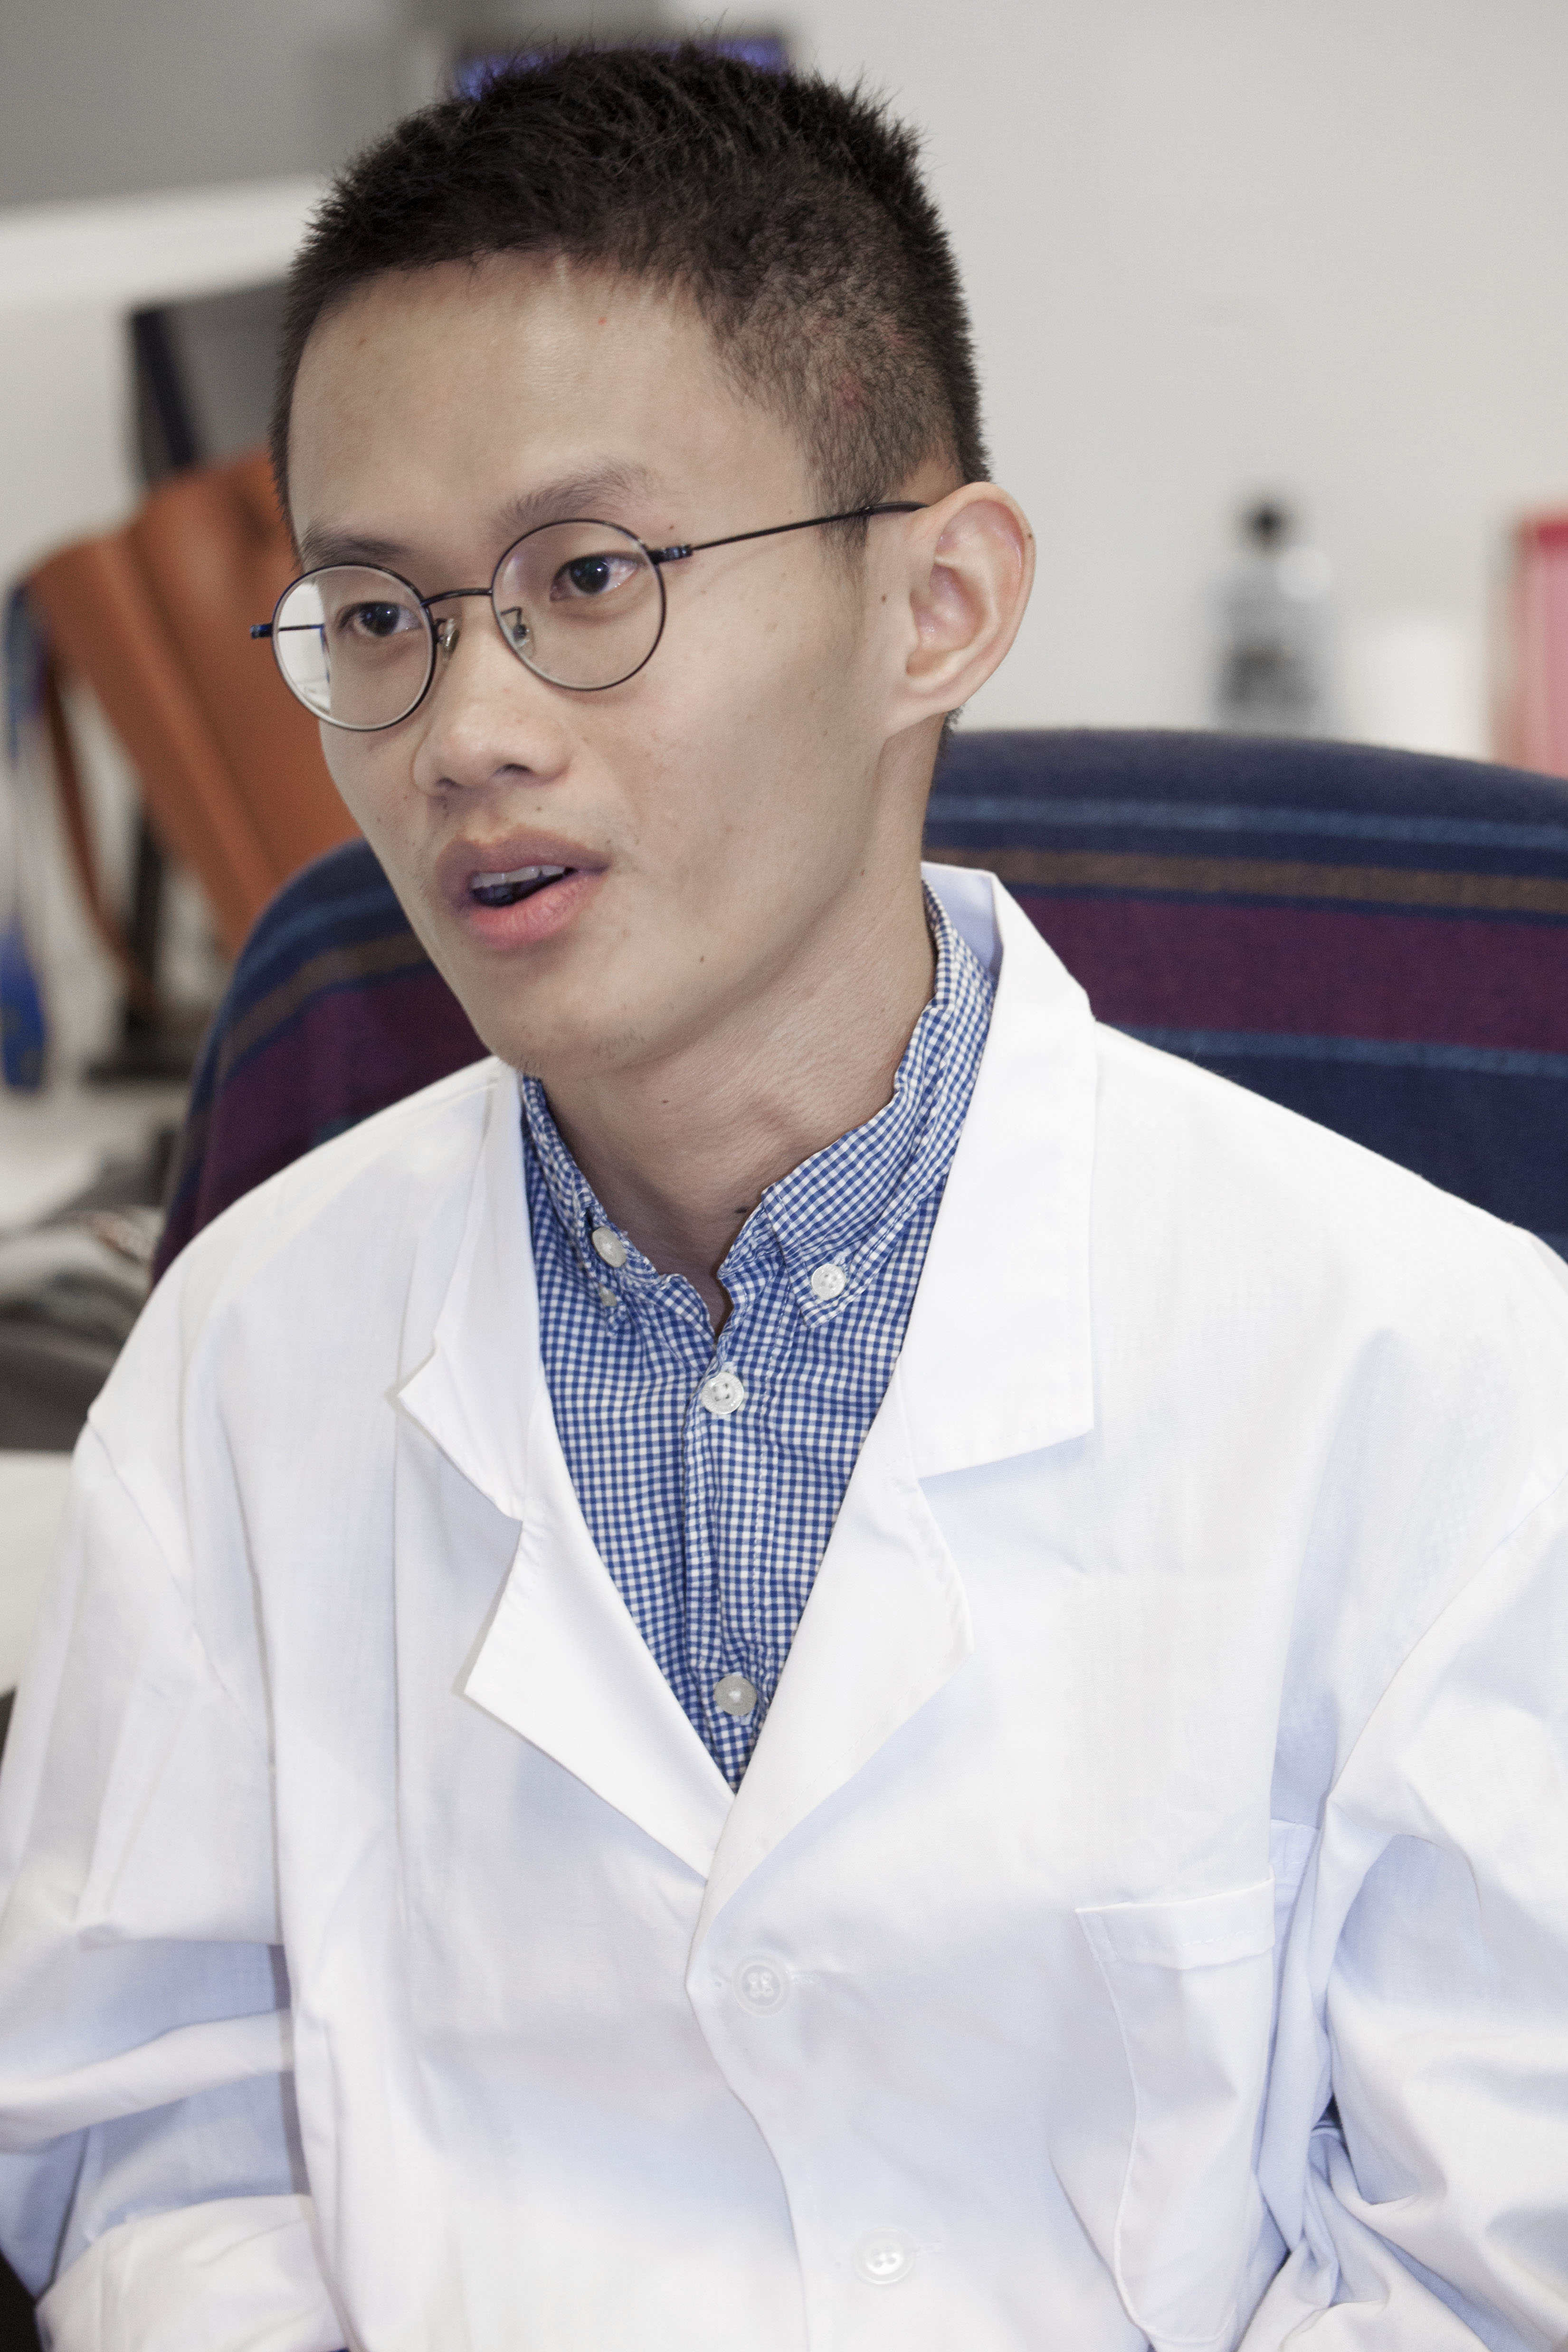 Sun Jingzhang is working on the application of artificial neural networks to reduce noise in medical imaging under the guidance of Prof Mok.